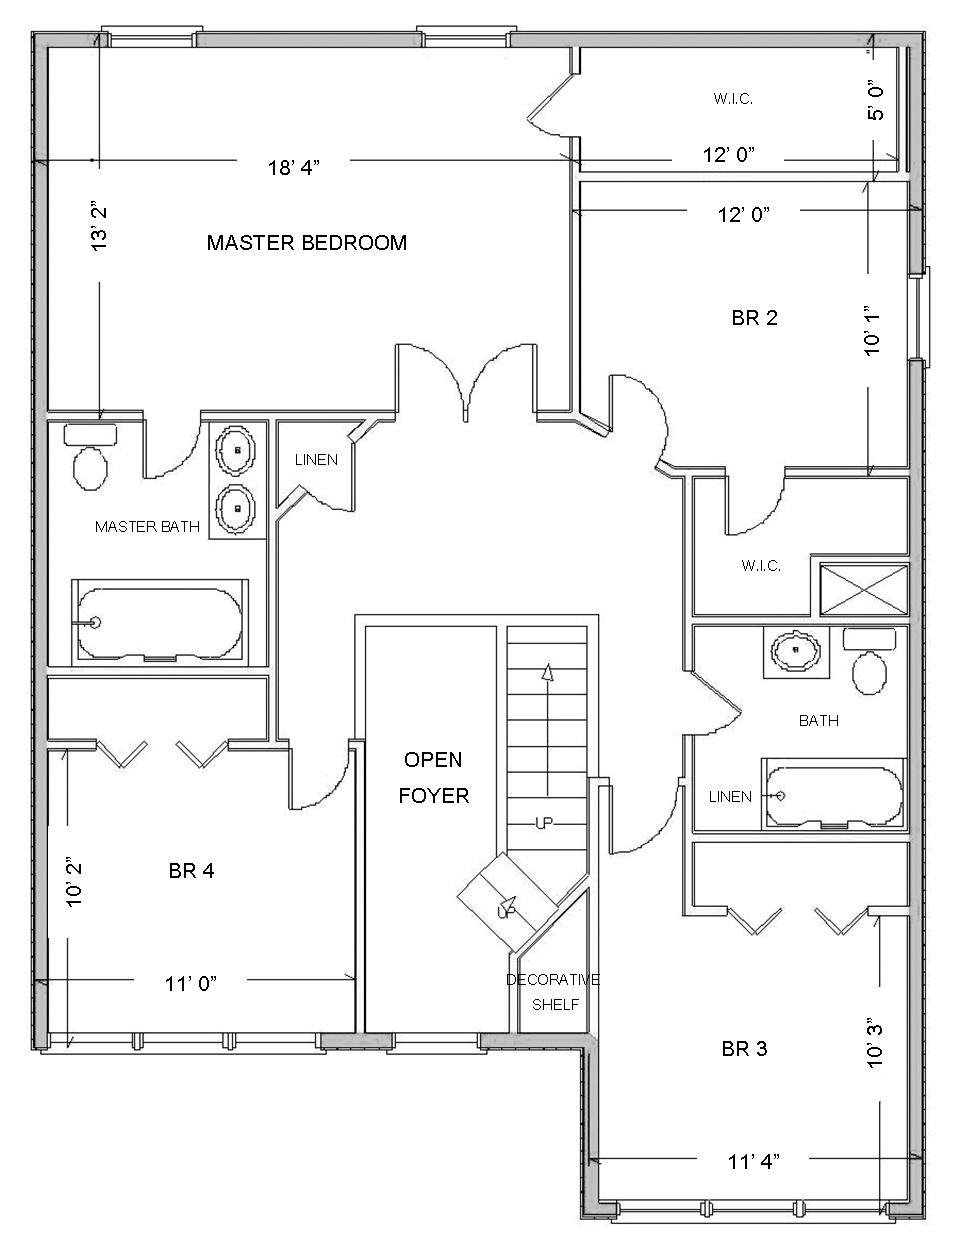 Digital smart draw floor plan with smartdraw software for Draw your house plans